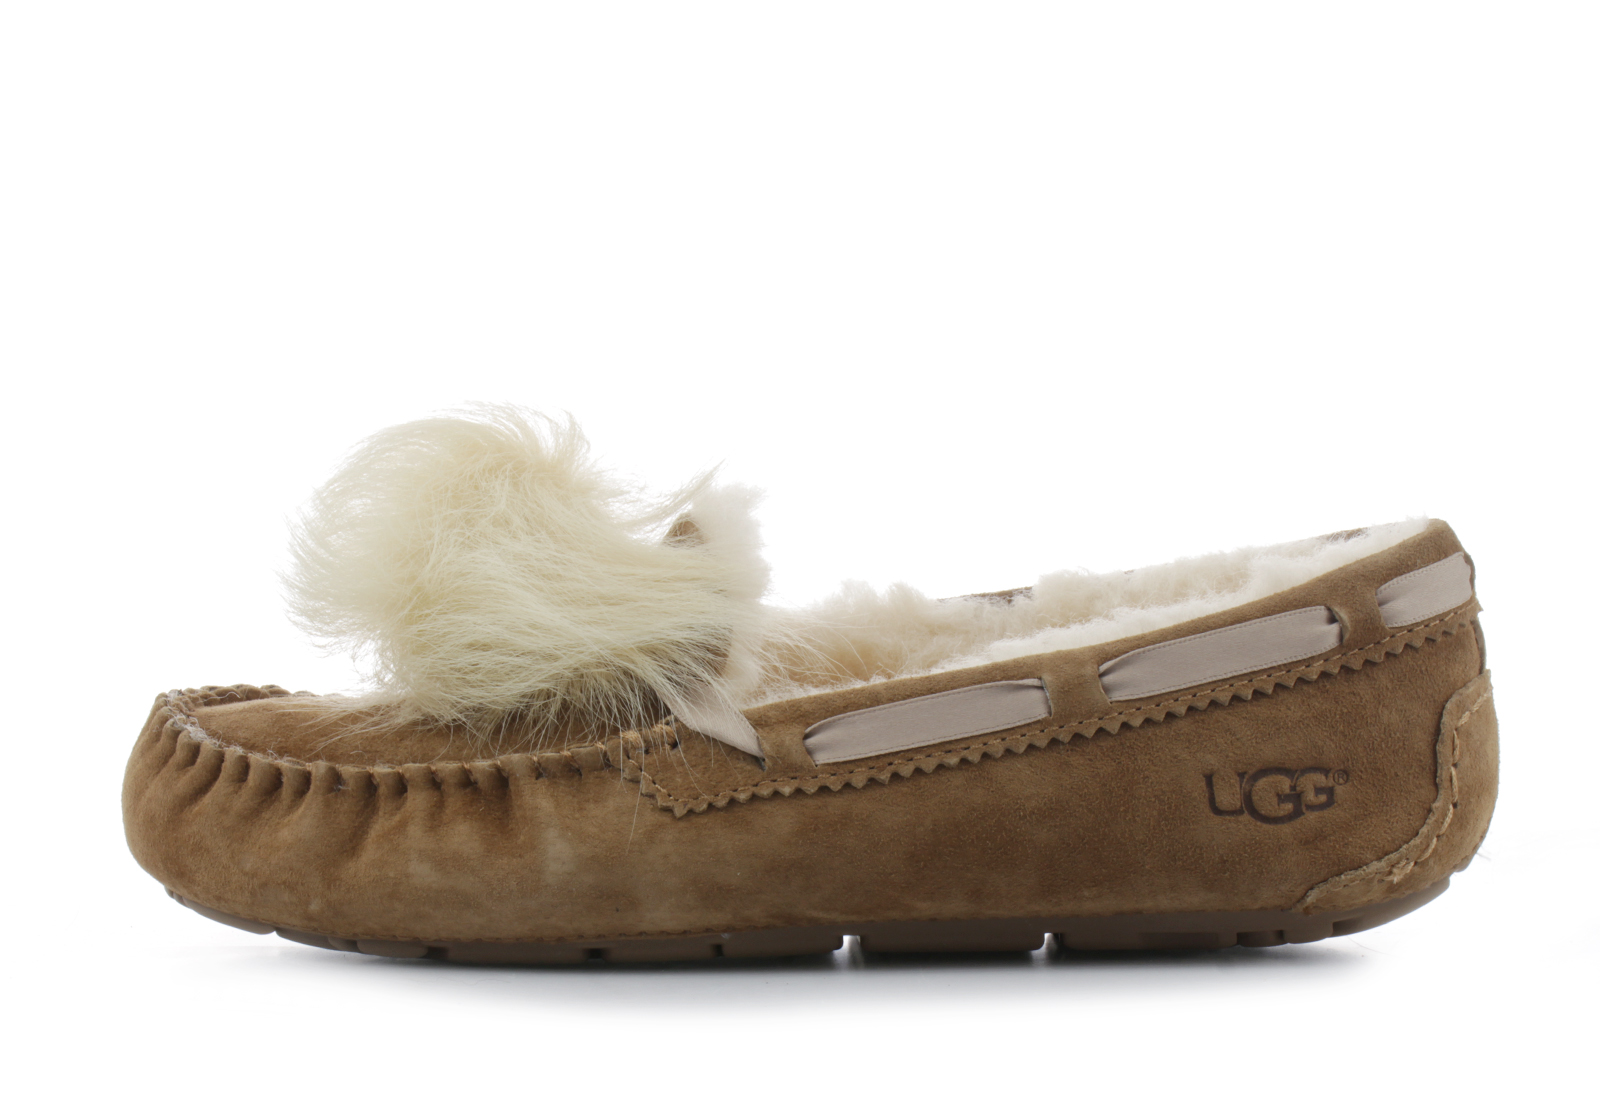 d2ecbdbe705 Ugg Shoes - Dakota Pom Pom - 1019015-CHE - Online shop for sneakers, shoes  and boots